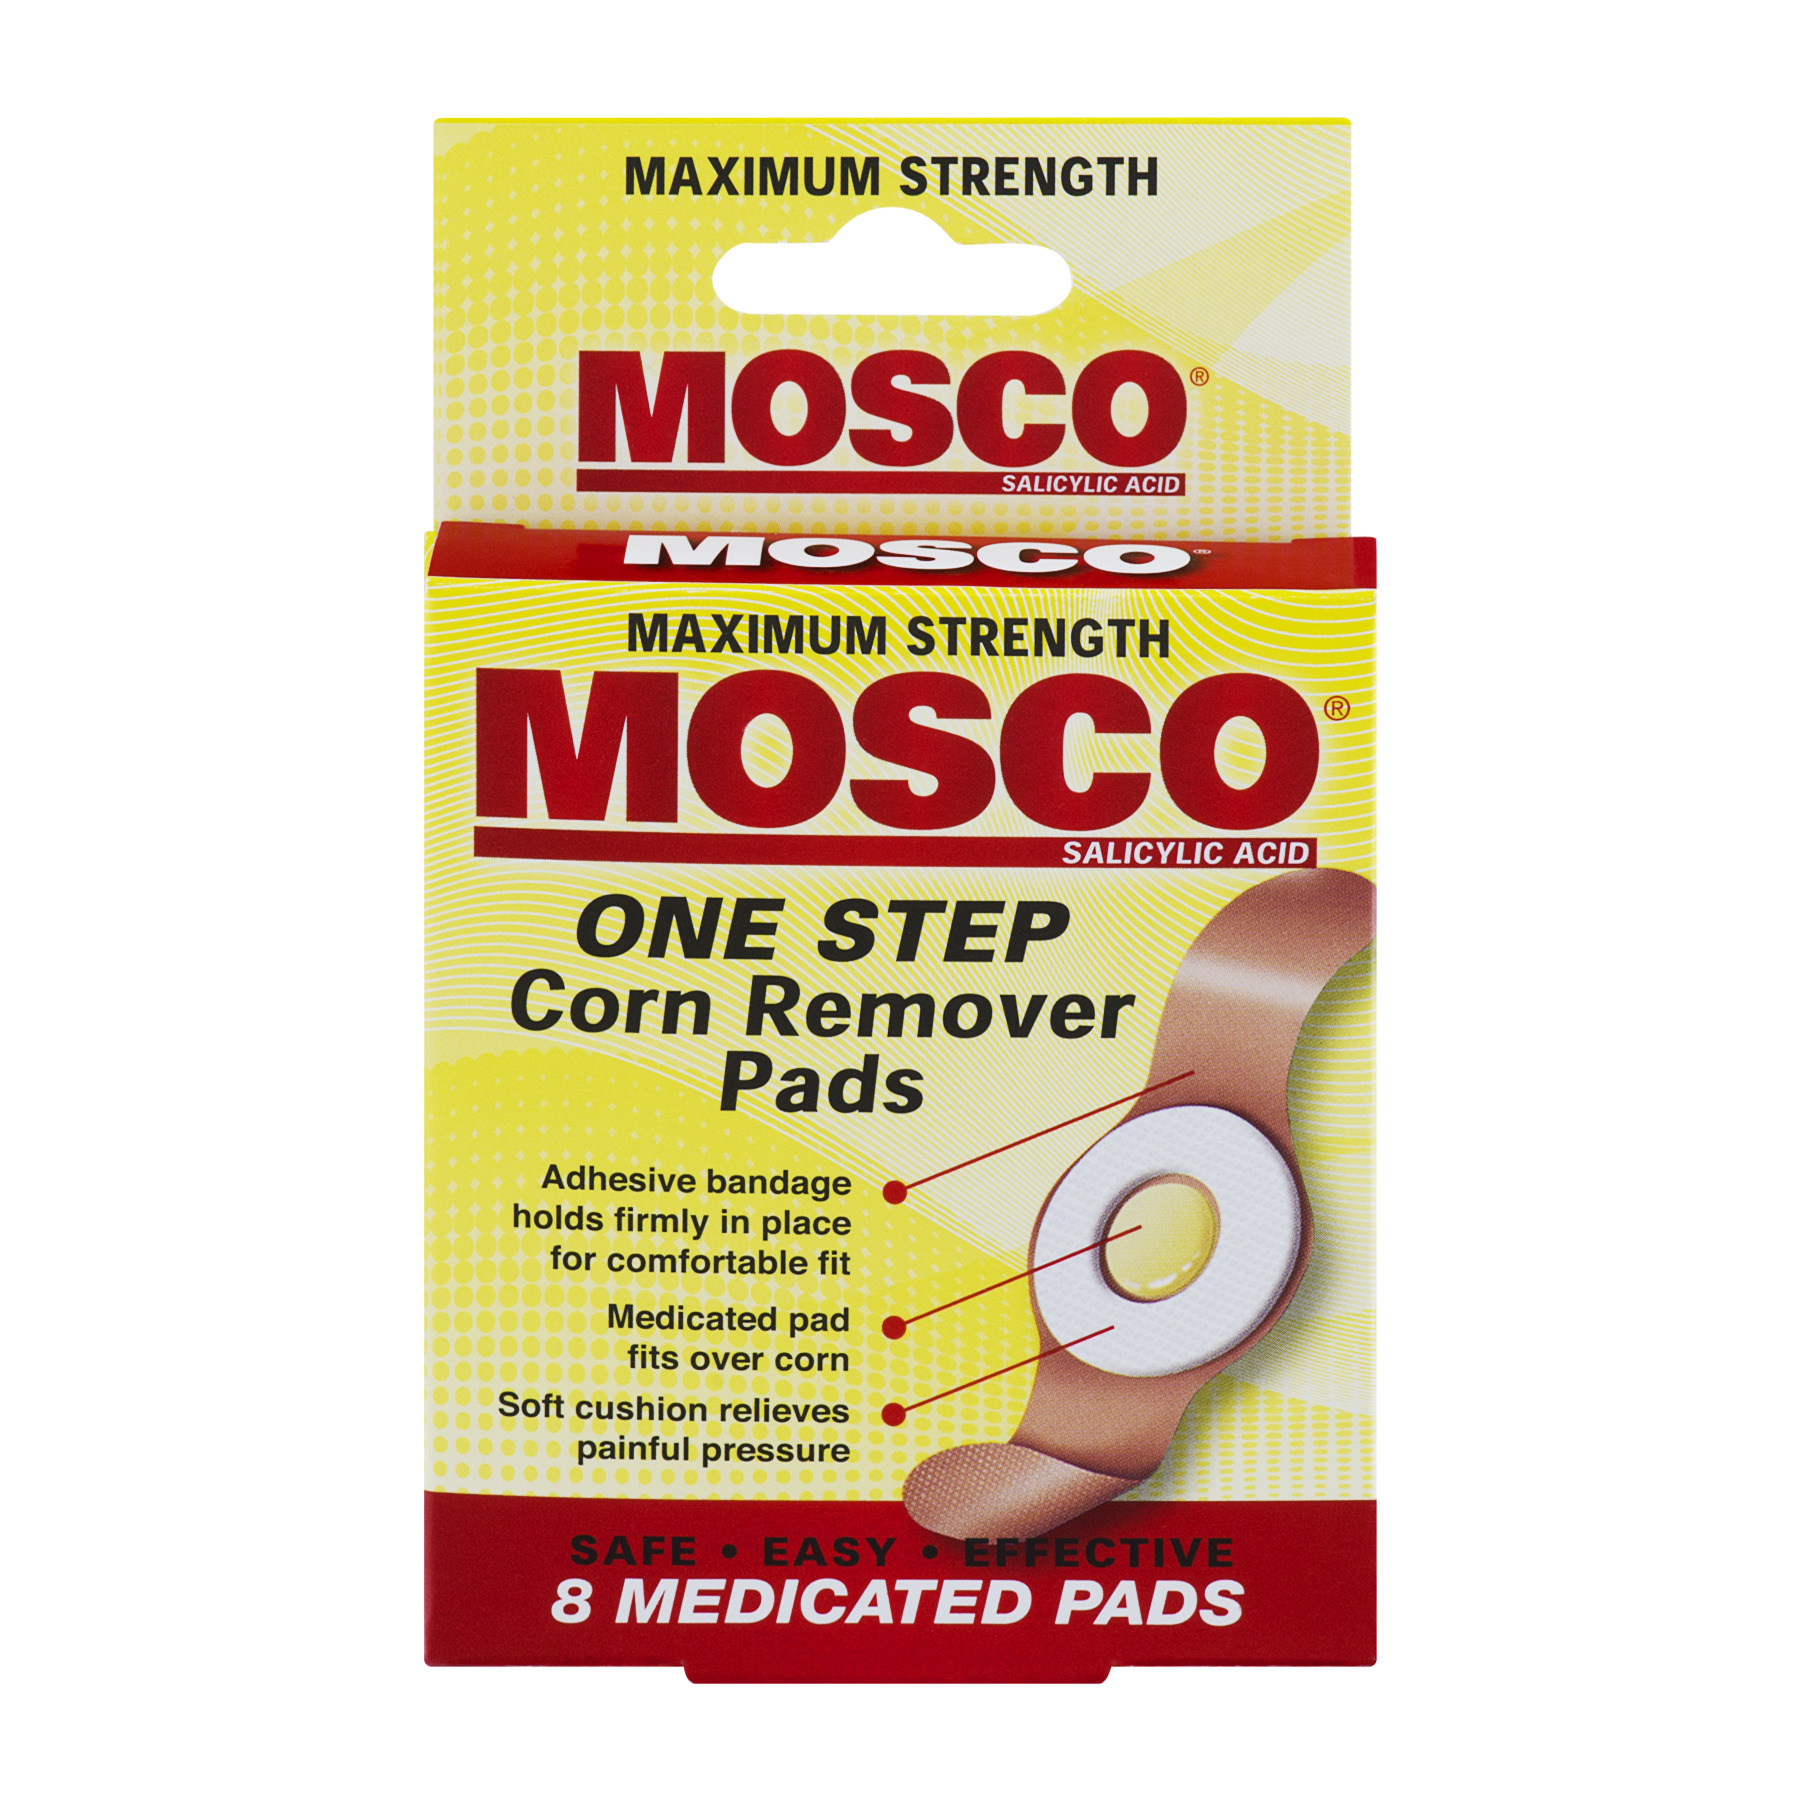 Mosco: Maximum Strength Corn Remover Pads, 8 ct